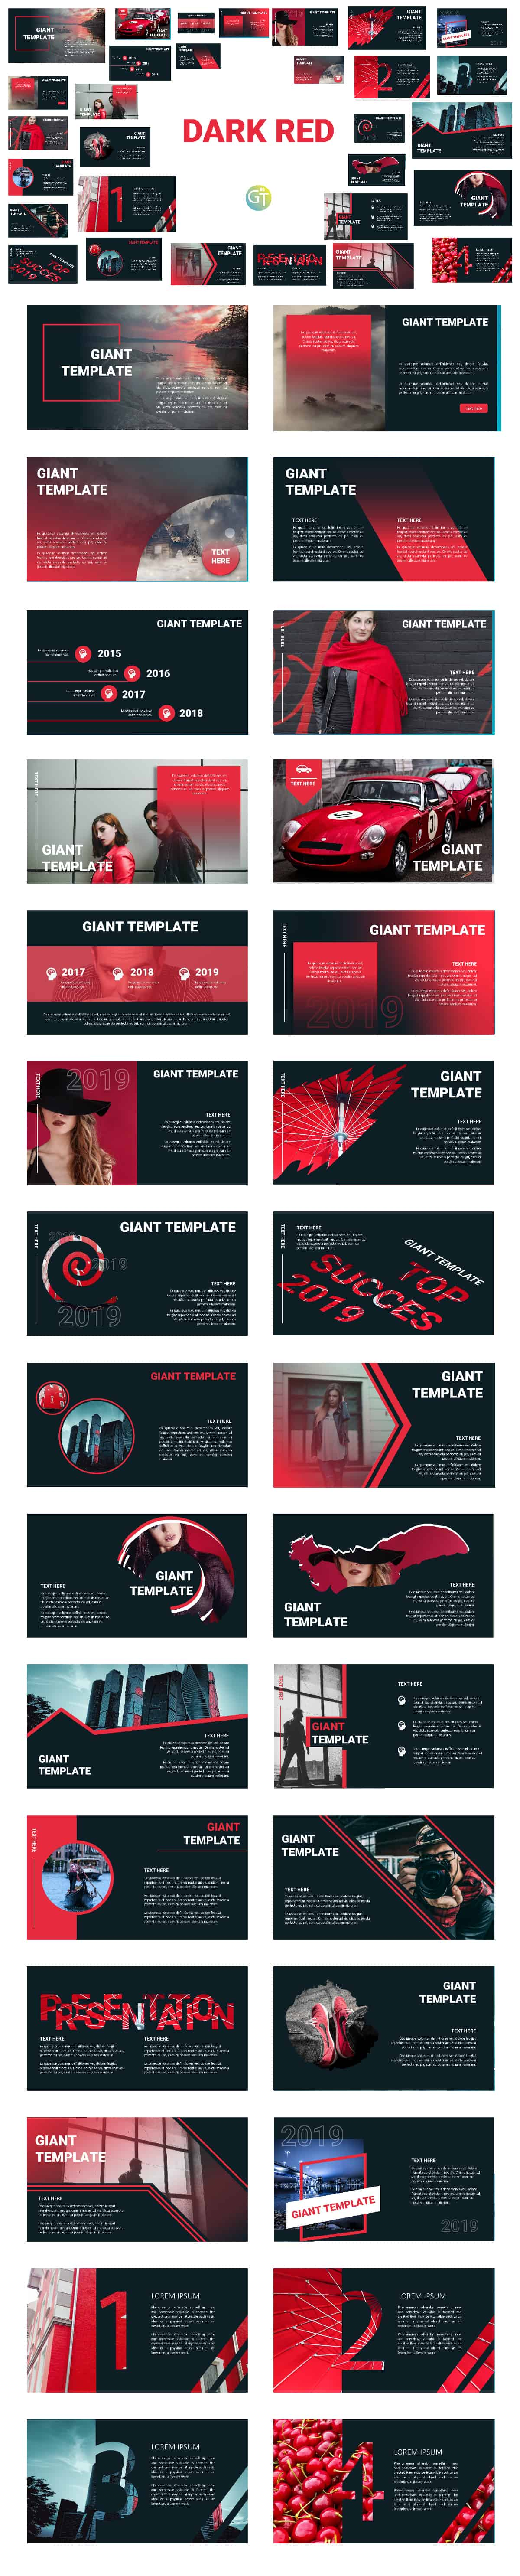 Template PPT dark ded free download